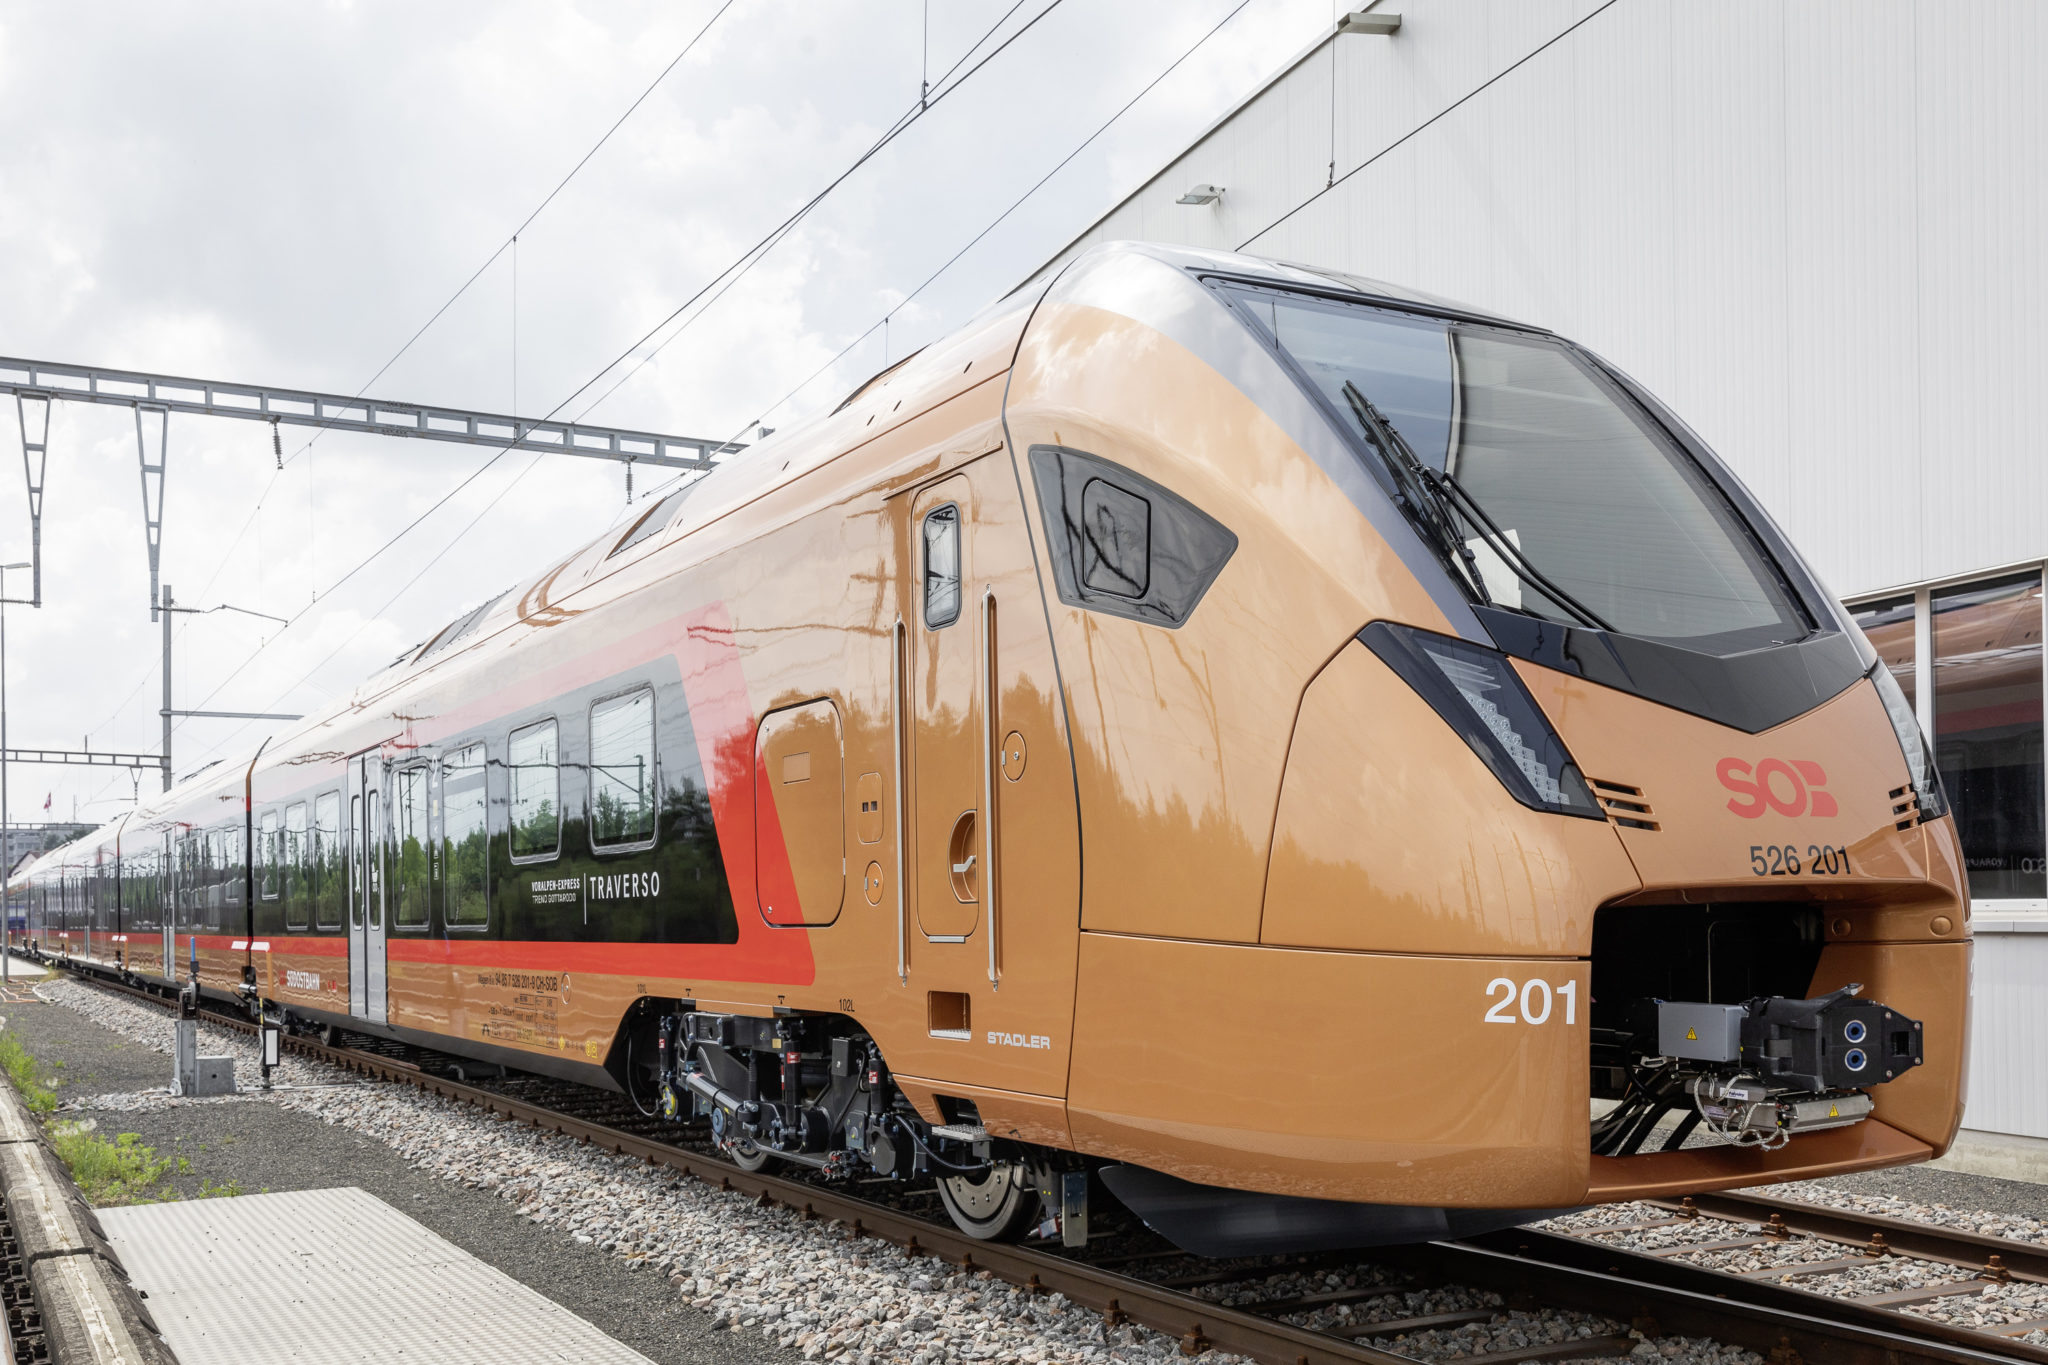 One of the Stadler FLIRT Traverso trains